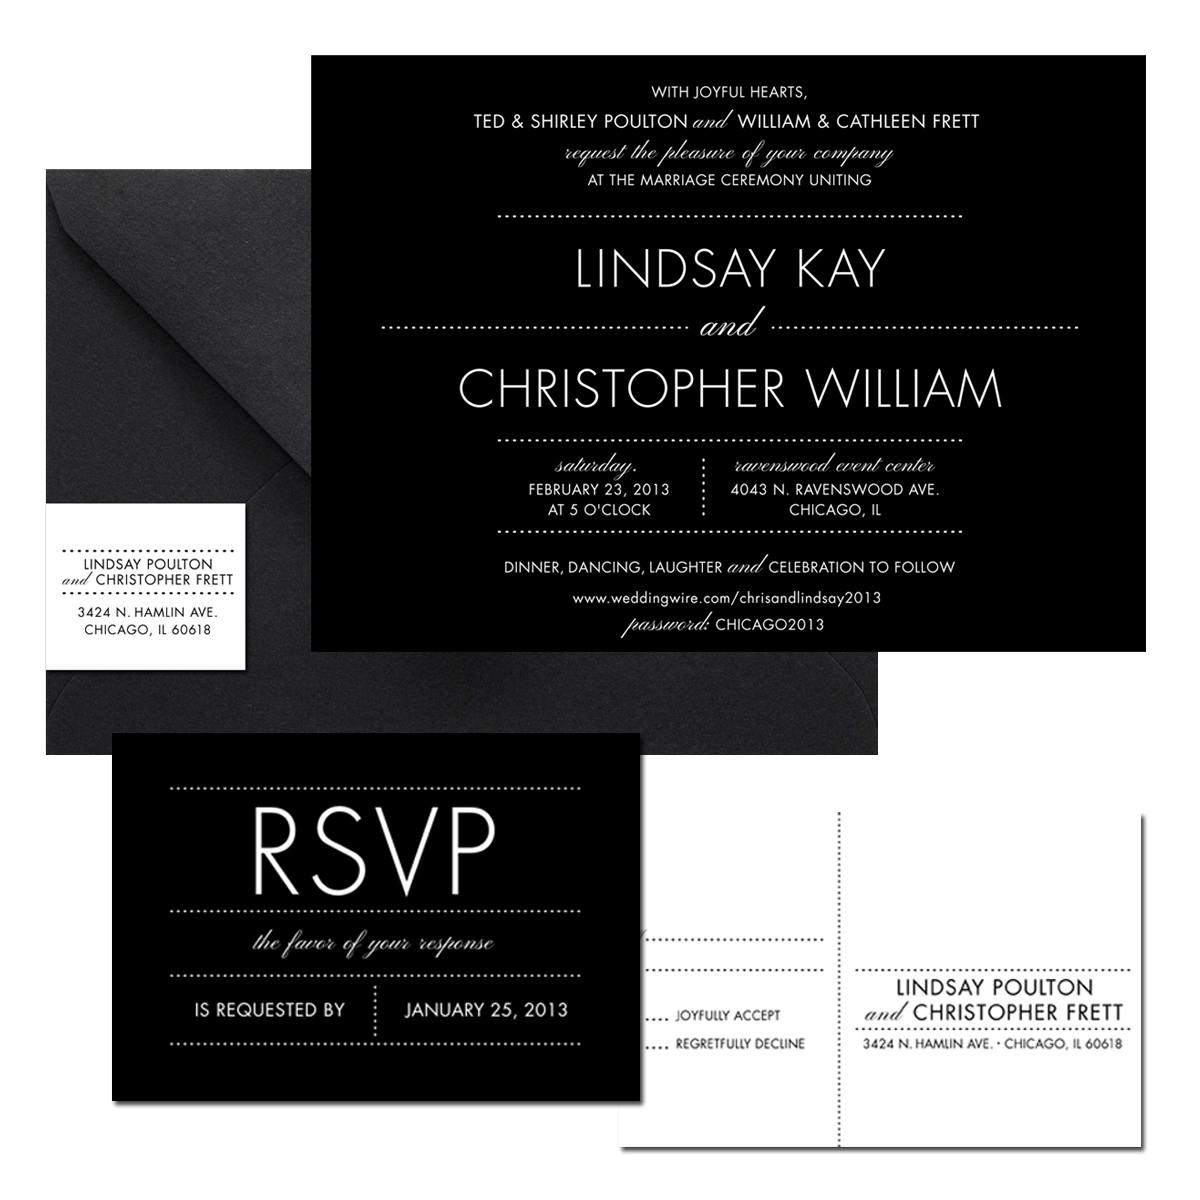 Modern wedding invitations for you: Contemporary wedding invitations ...